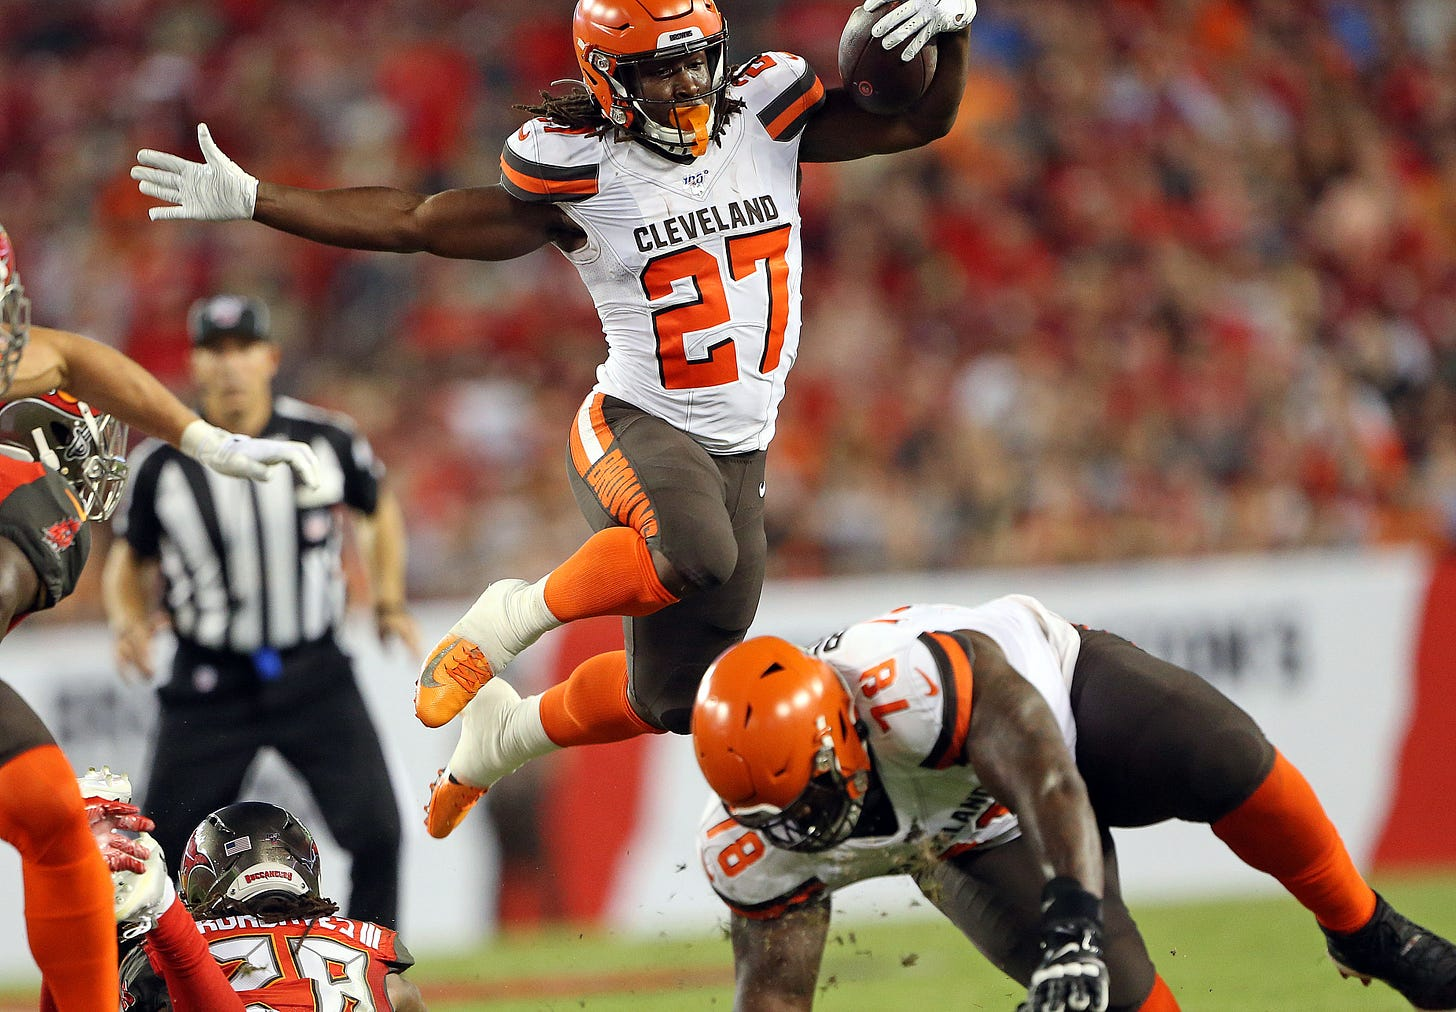 Kareem Hunt needs 4-6 weeks to recover from surgery; Browns start making  cuts and other takeaways - cleveland.com